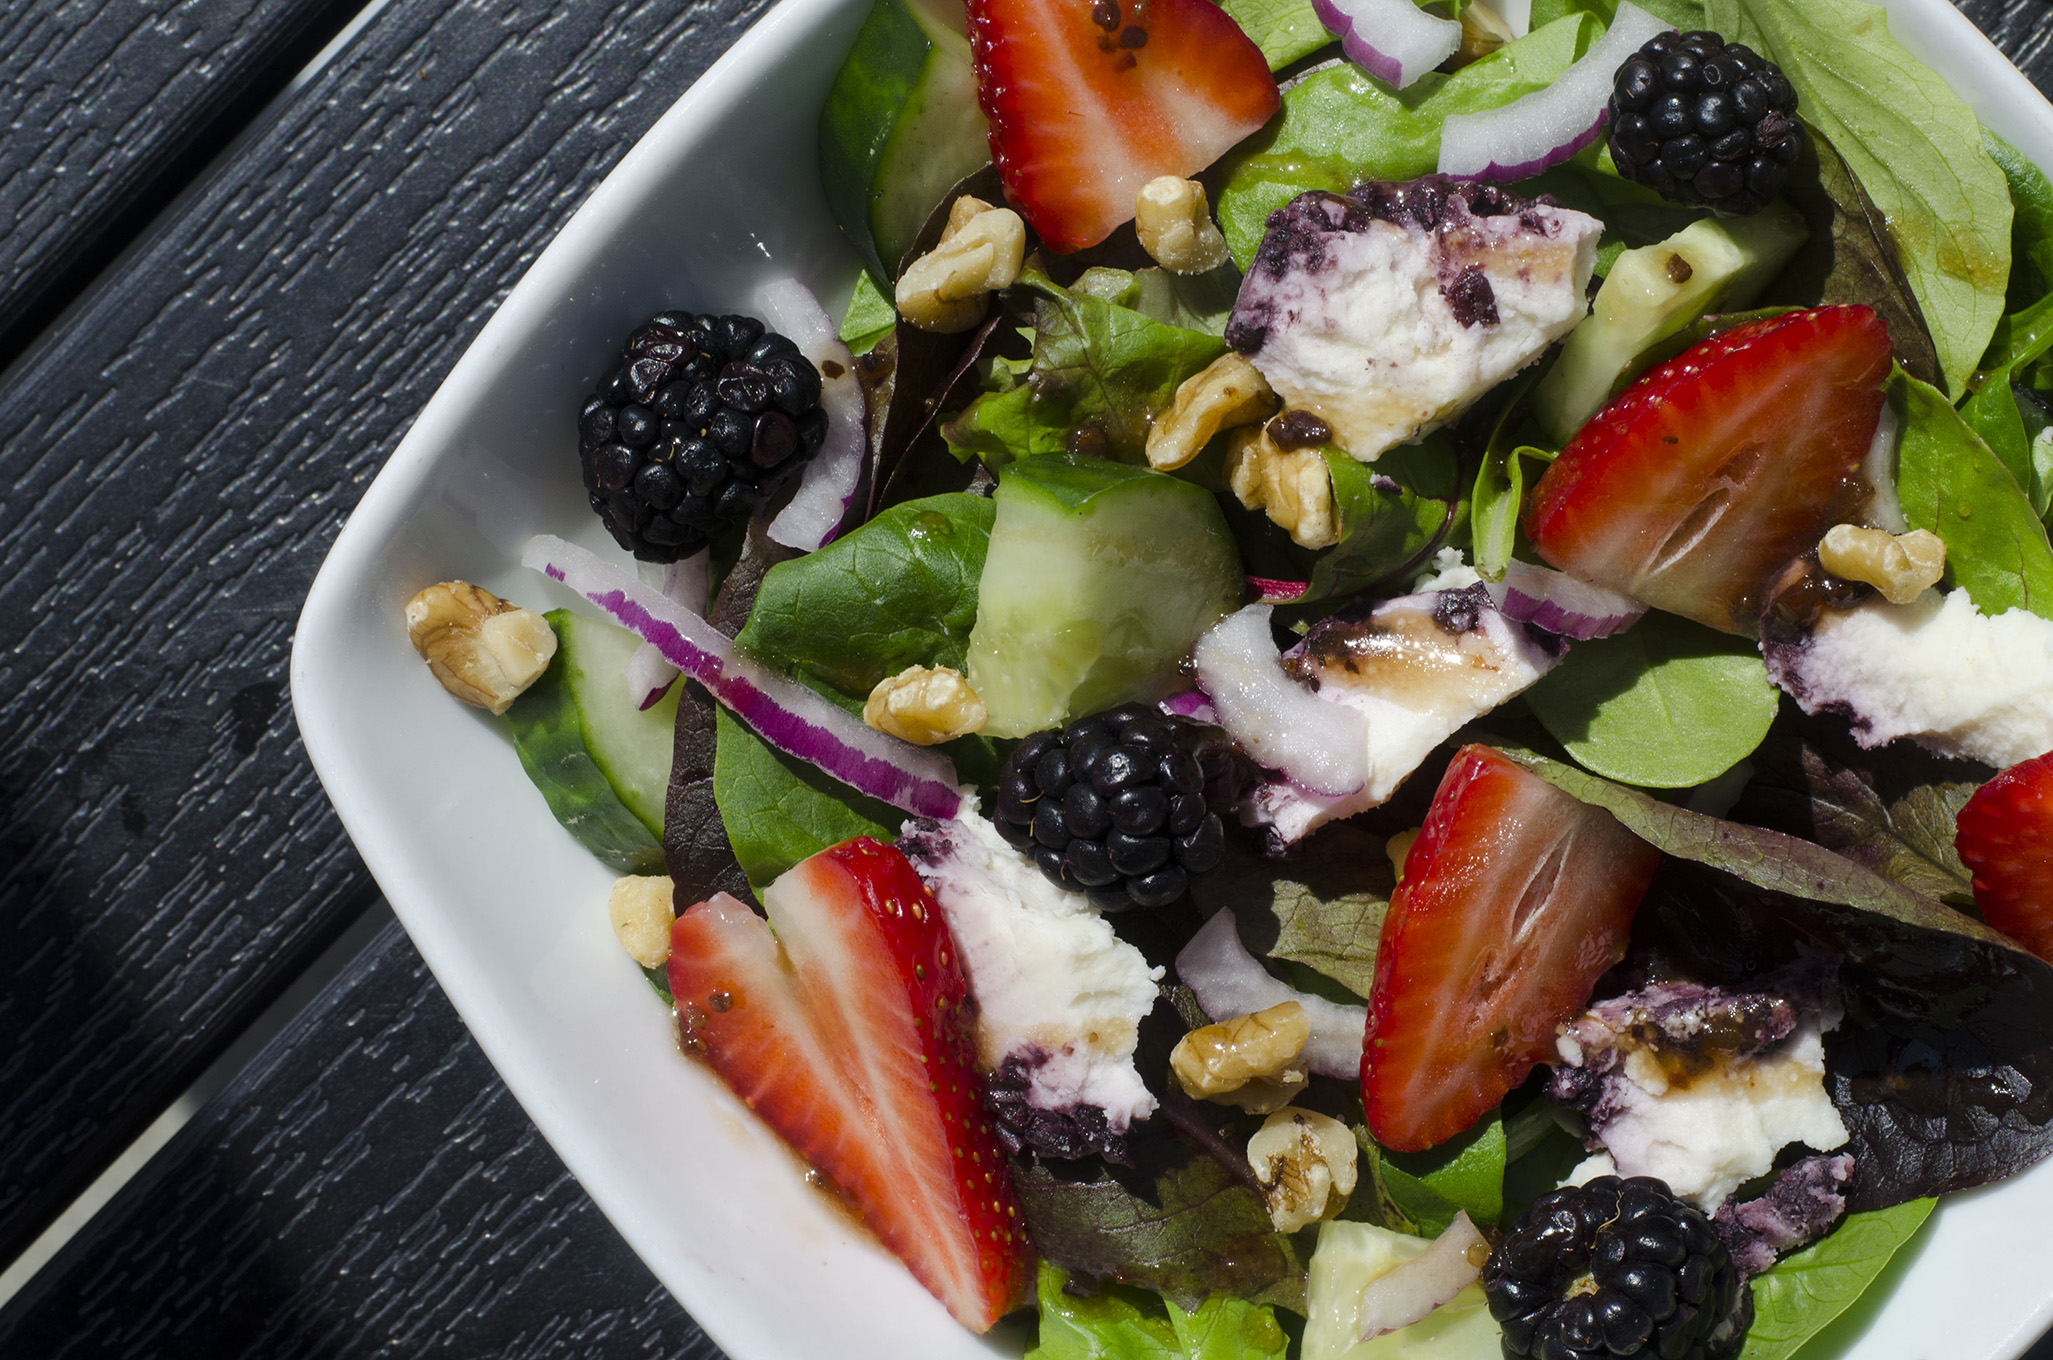 Mixed Berry & Goat Cheese Salad from the Joe Schmoe's GL Heritage Brewing dinner on June 18, 2019.